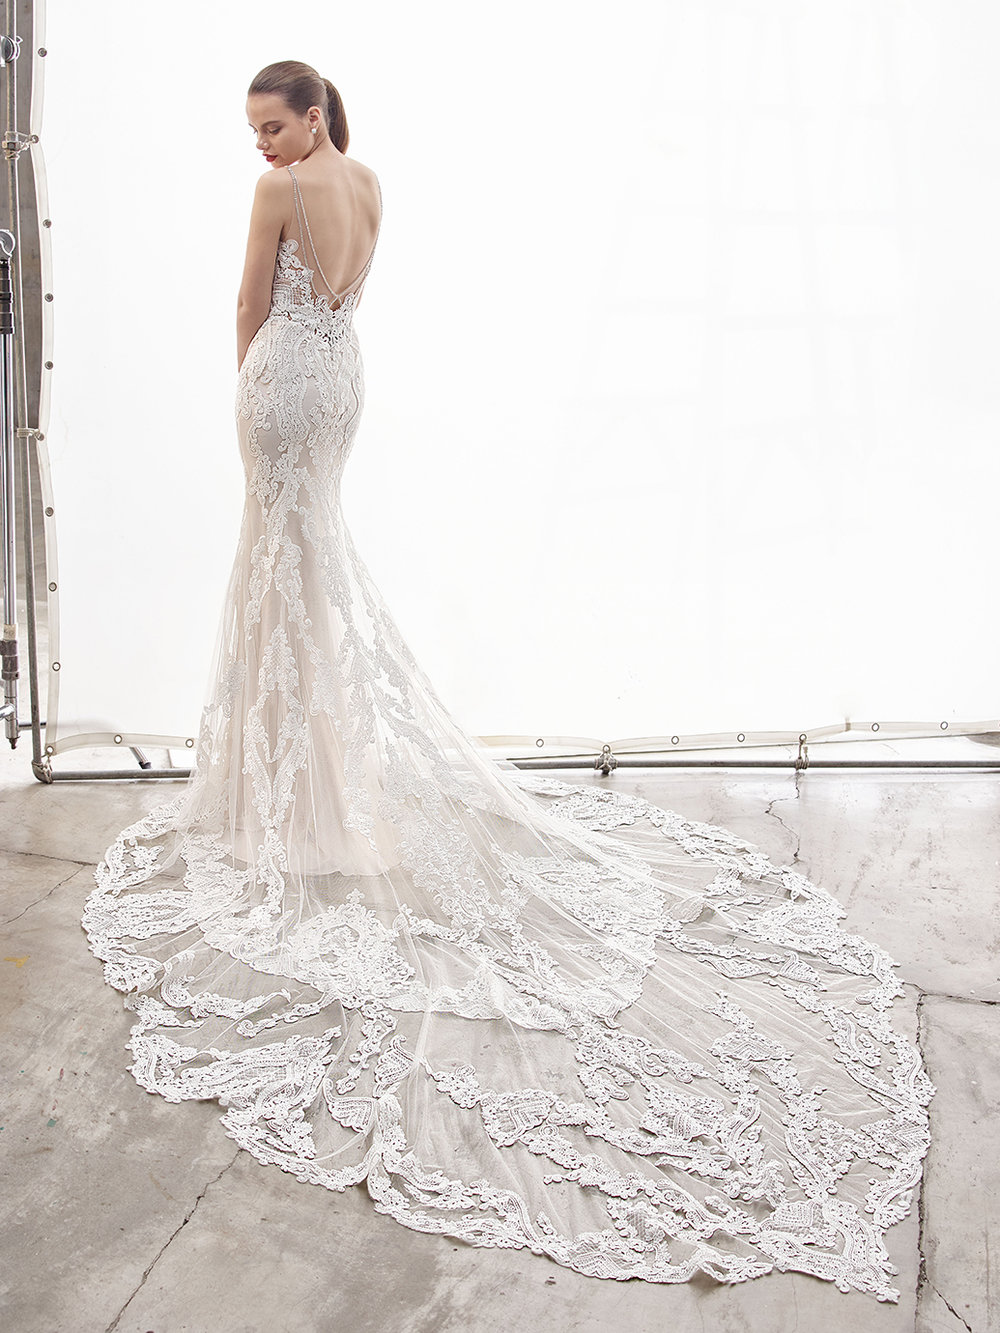 LACE WEDDING DRESSES - Year after year, lace wedding dresses remain a staple and today's gowns are no exception! Lace is a stunning fabric that feels classic yet modern in design.